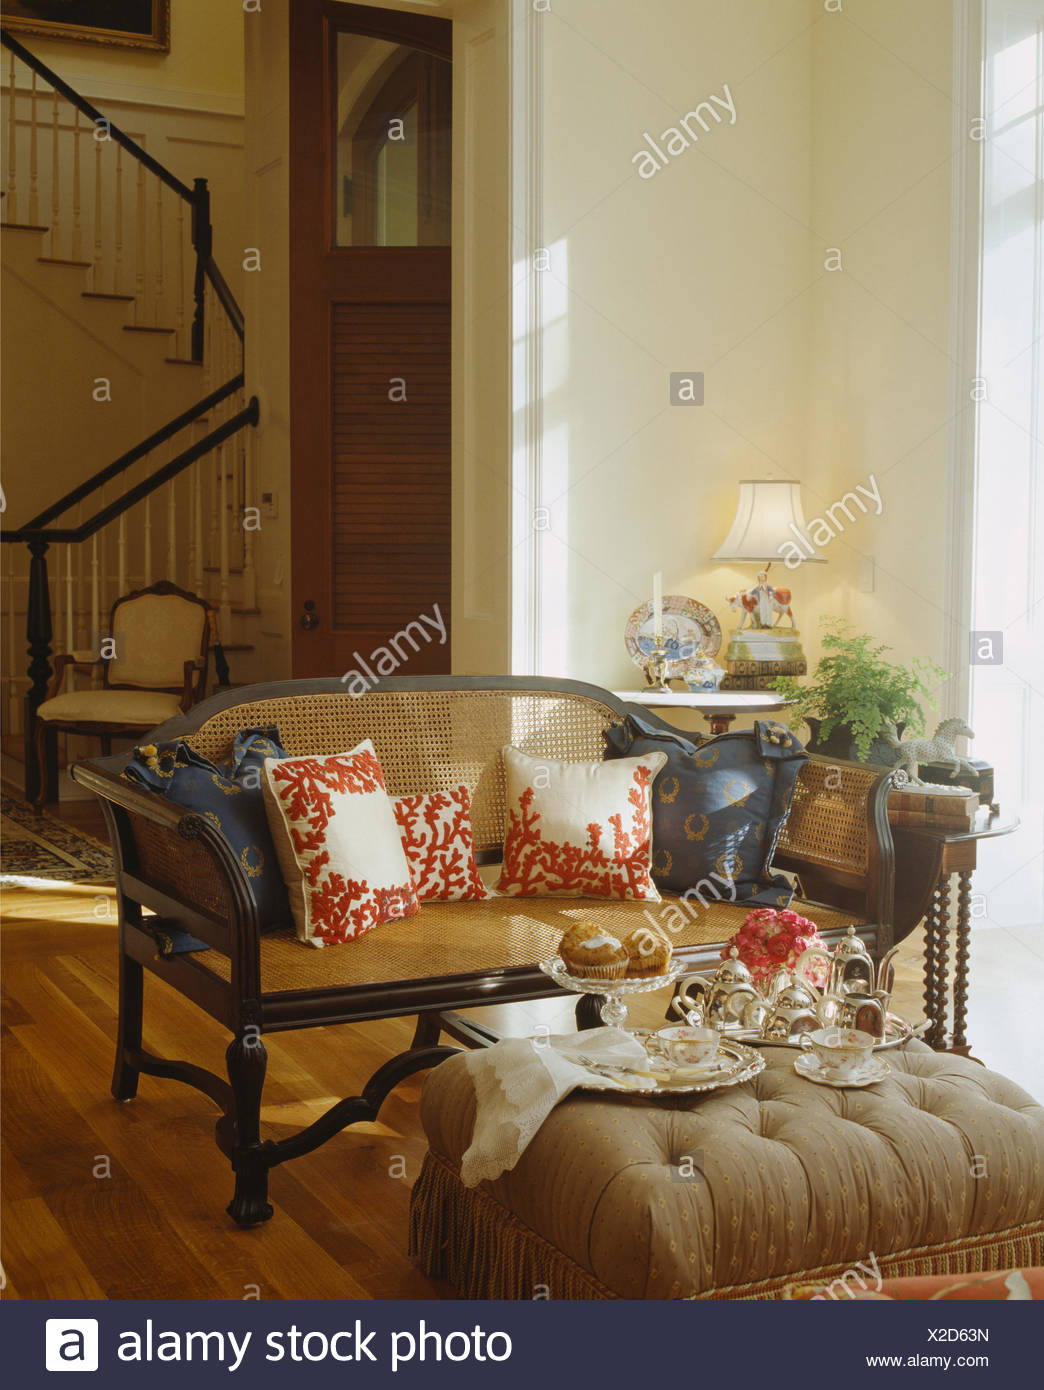 Charmant Tea Set On Upholstered Stool In Front Of Antique Bergere Sofa In Country Living  Room